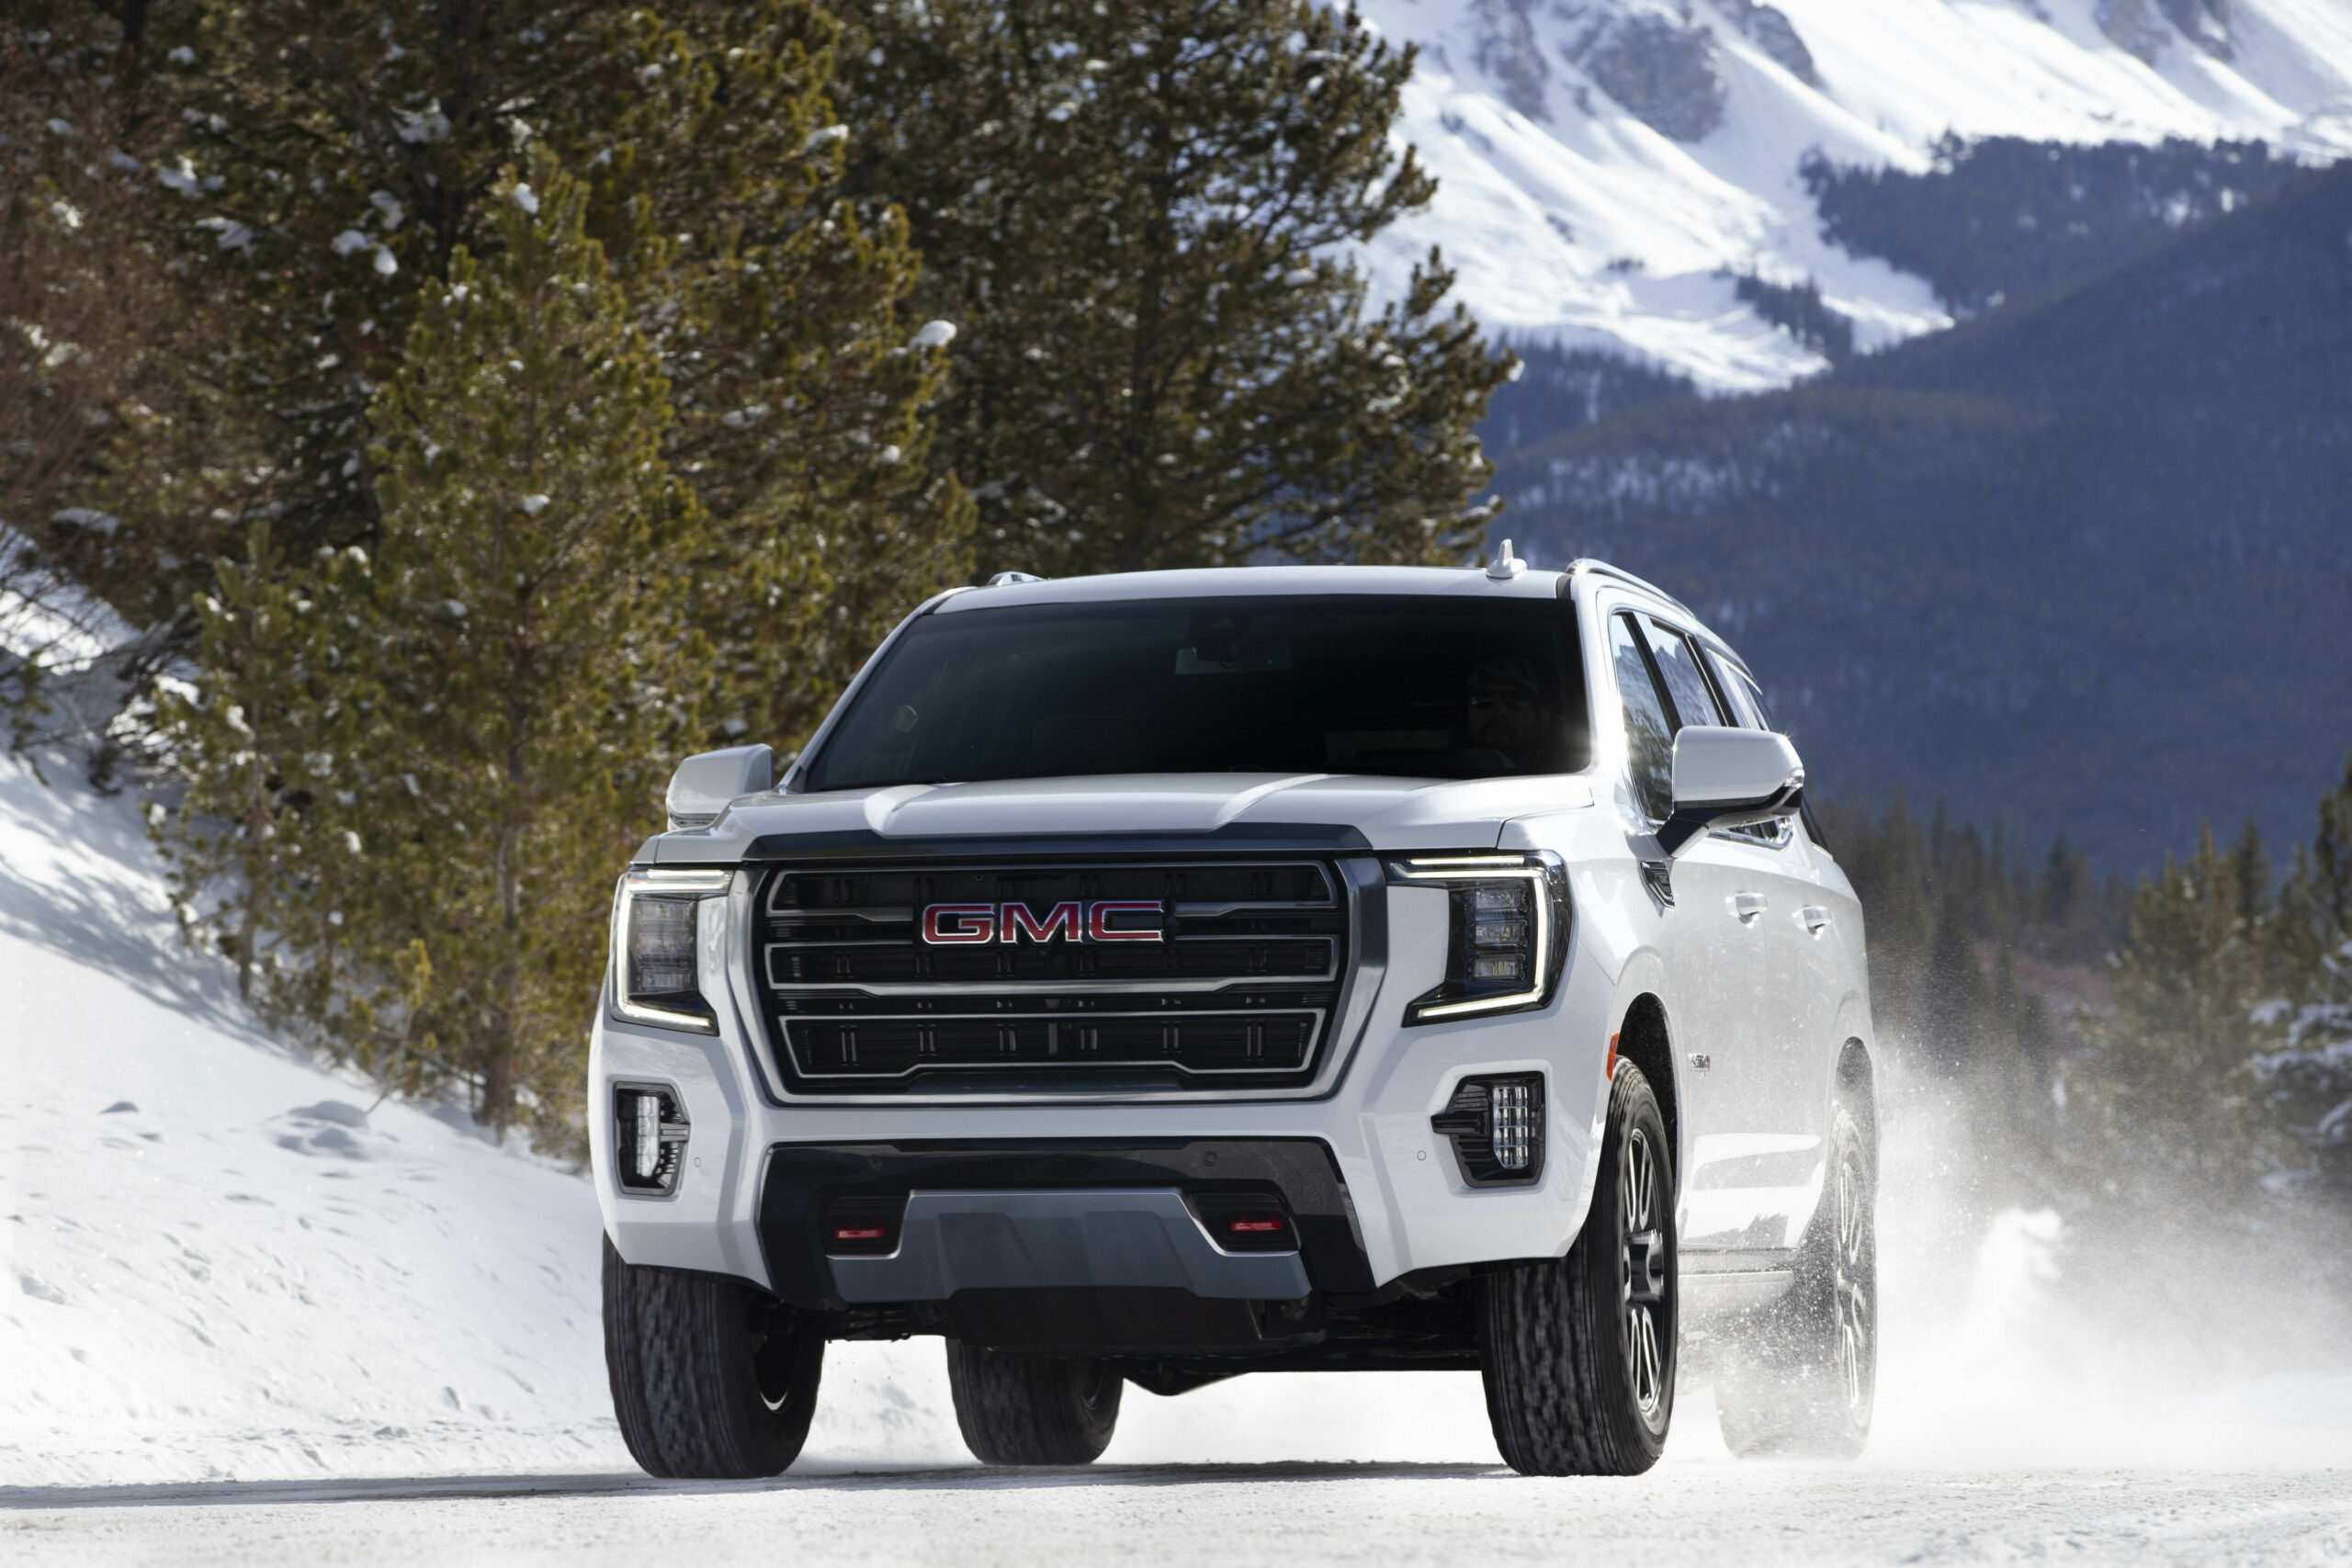 General Motors unveils new 8 GMC Yukon, Yukon XL SUVs